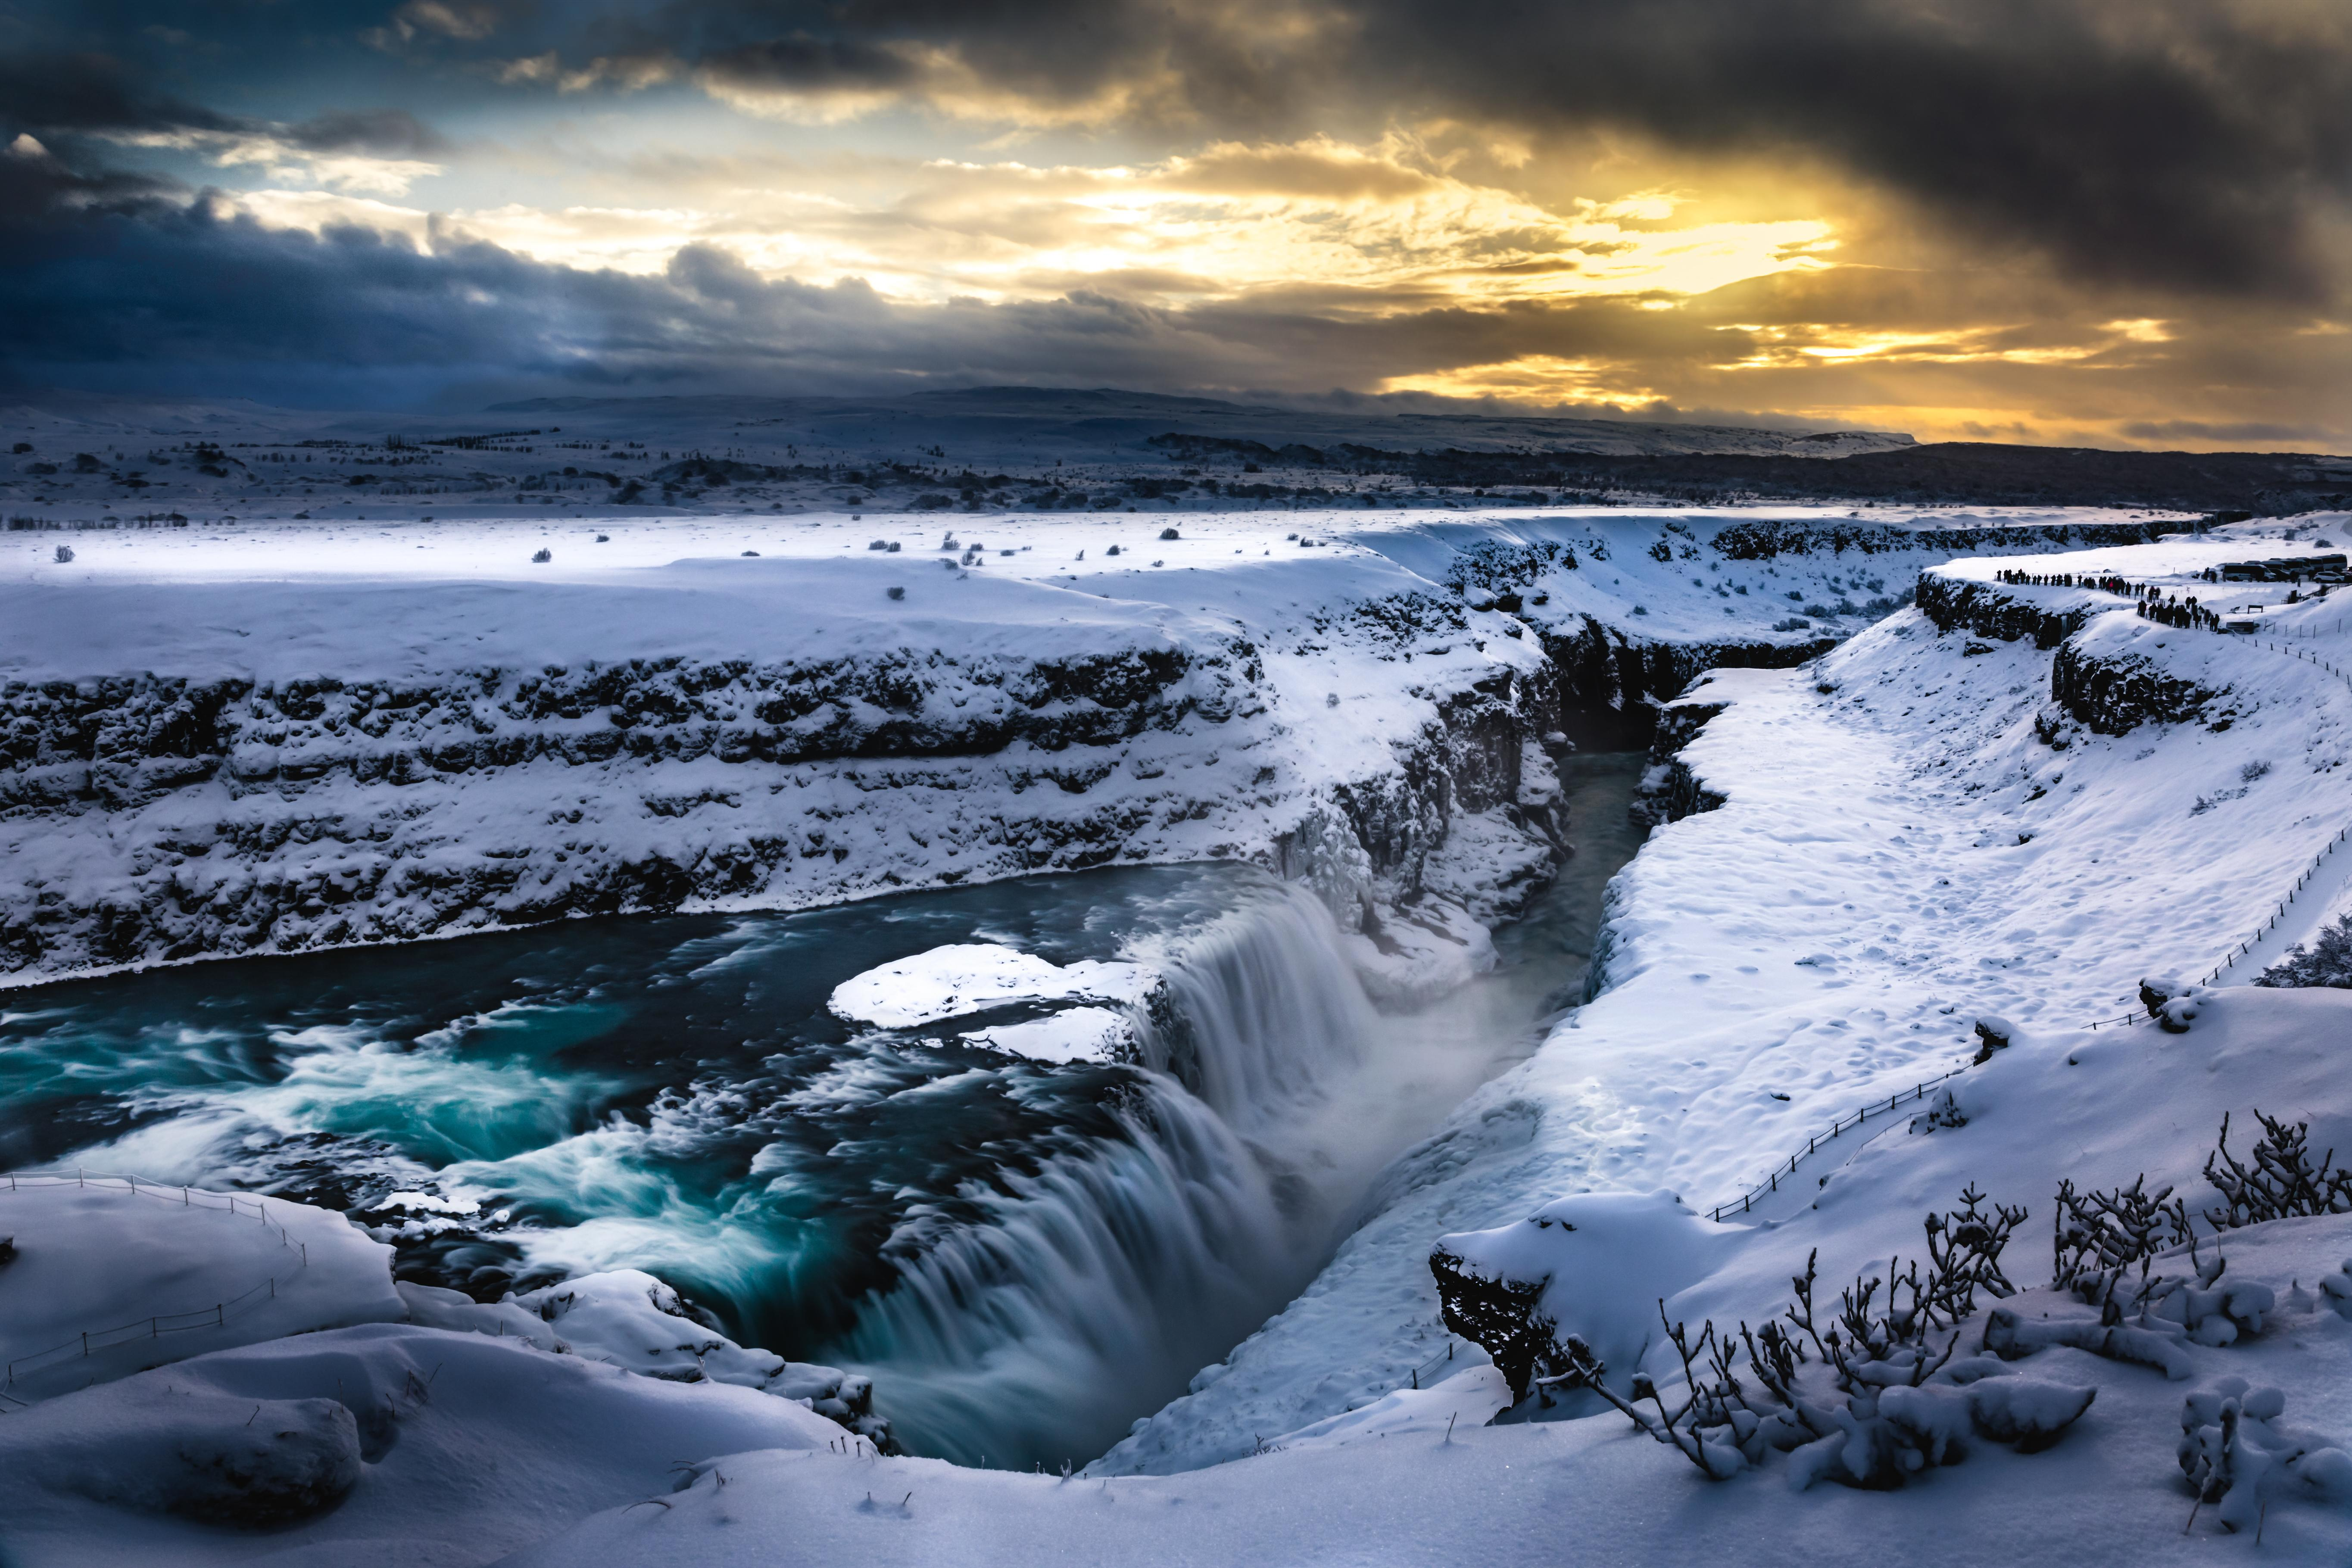 Iceland S Ring Road Wallpapers: Iceland Wallpapers 4k For Your Phone And Desktop Screen